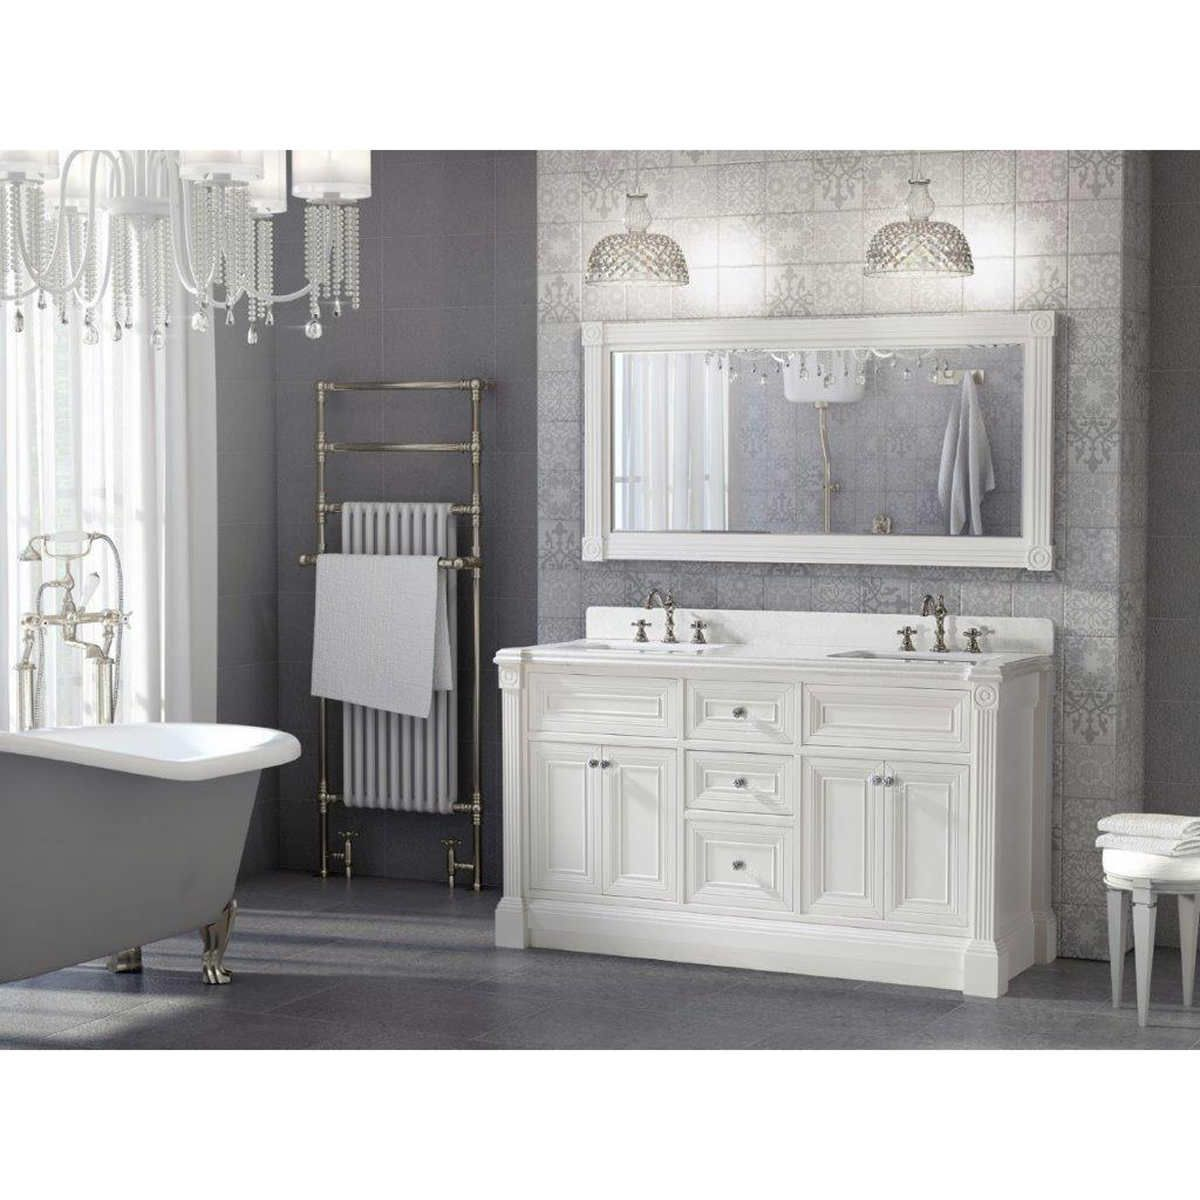 Inch White Finish Double Sink Bathroom Vanity Cabinet With - 63 inch double sink bathroom vanity for bathroom decor ideas